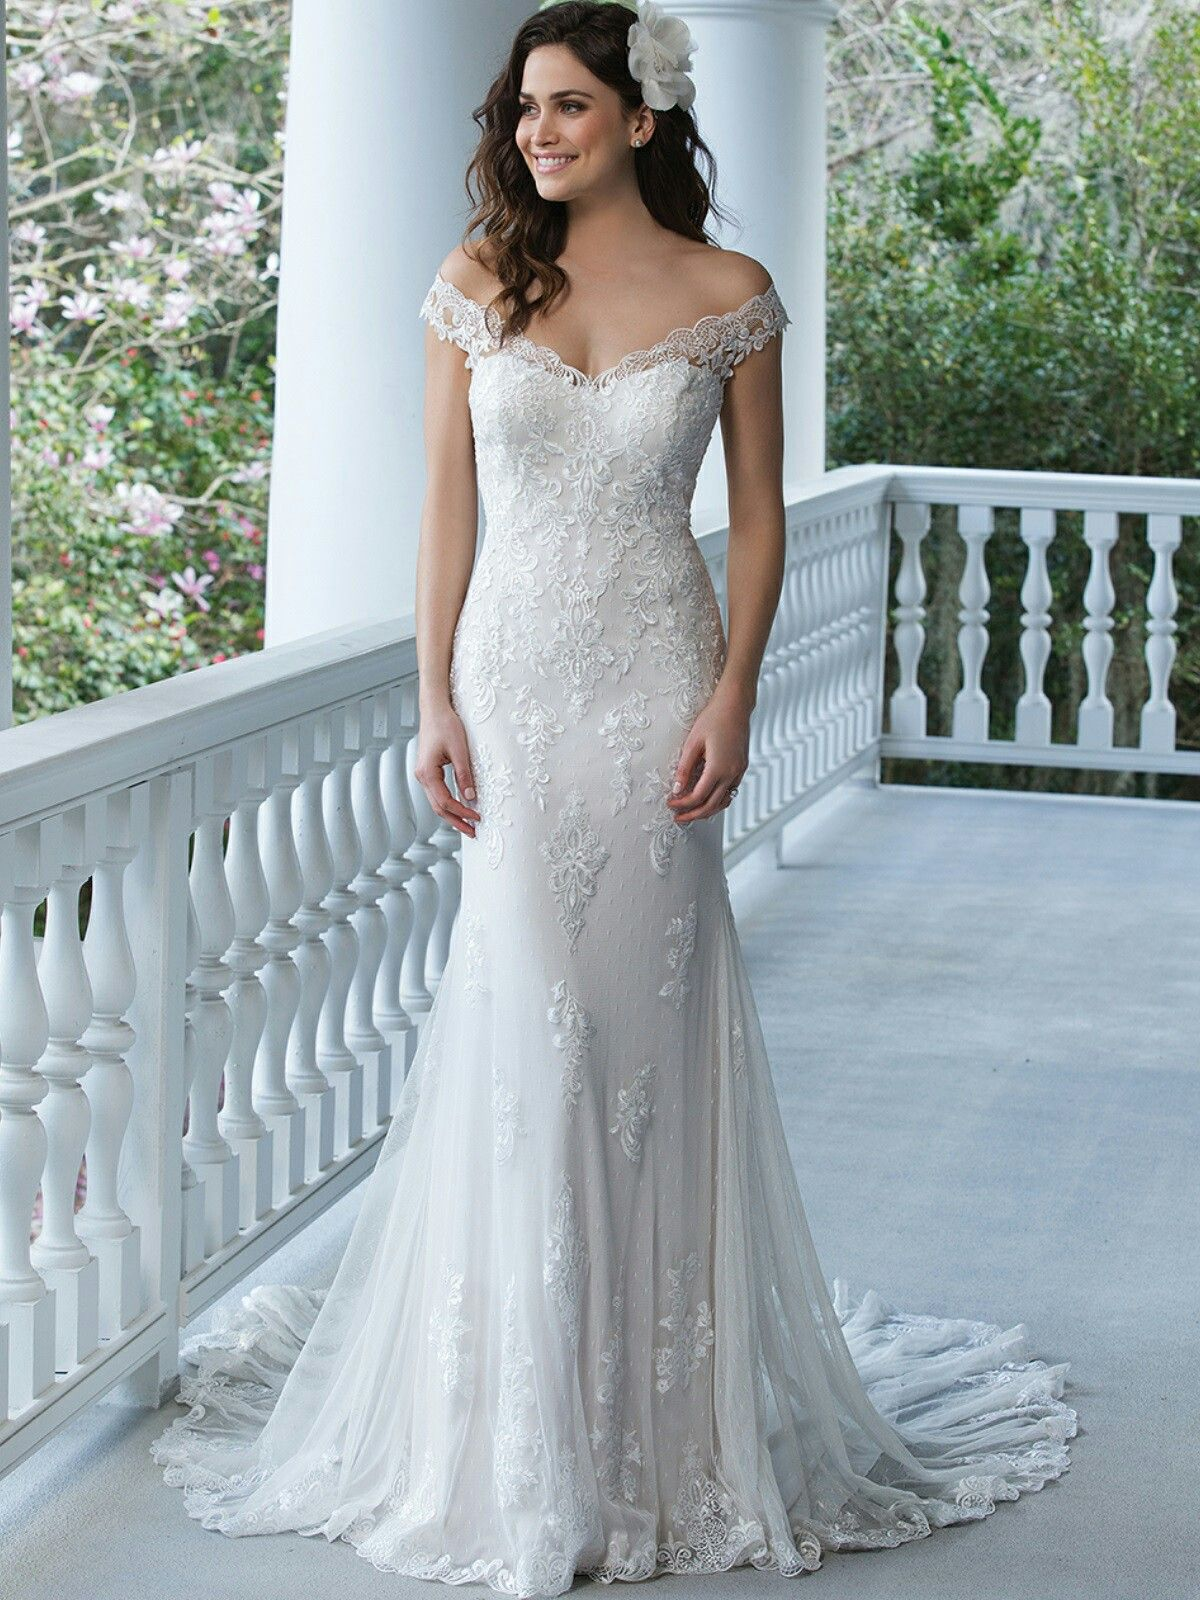 Pin by Tammy Simmons on Wedding dress dreams for Katie R. and Katie ...